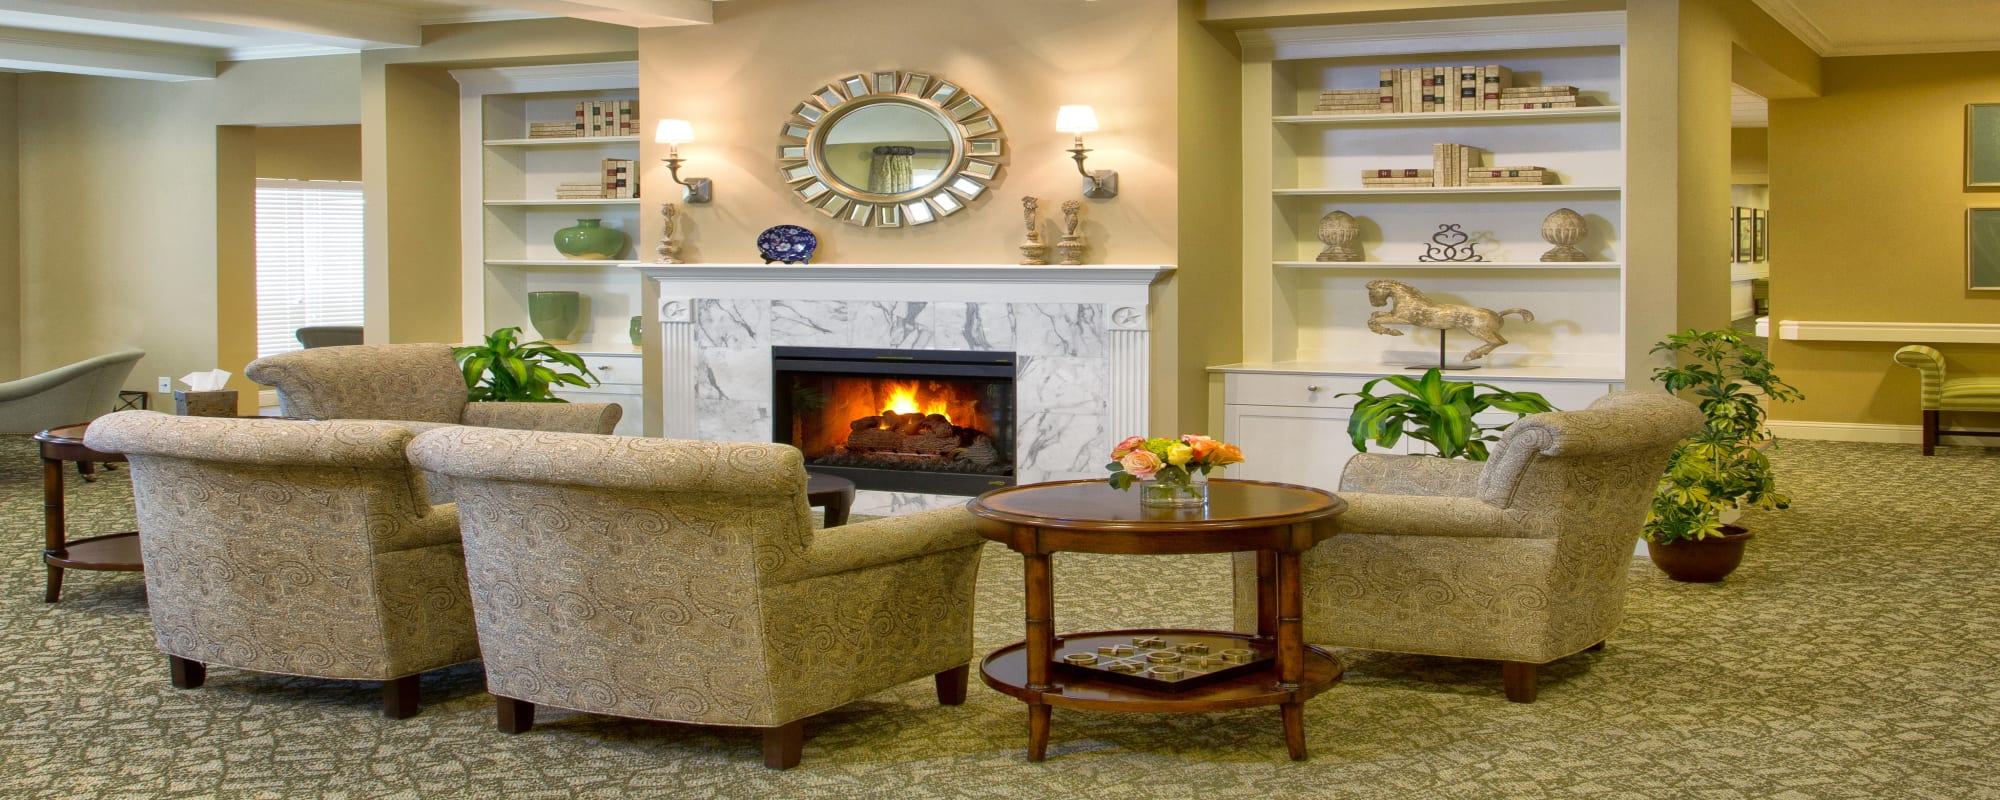 The Village of Tanglewood fireplace seating